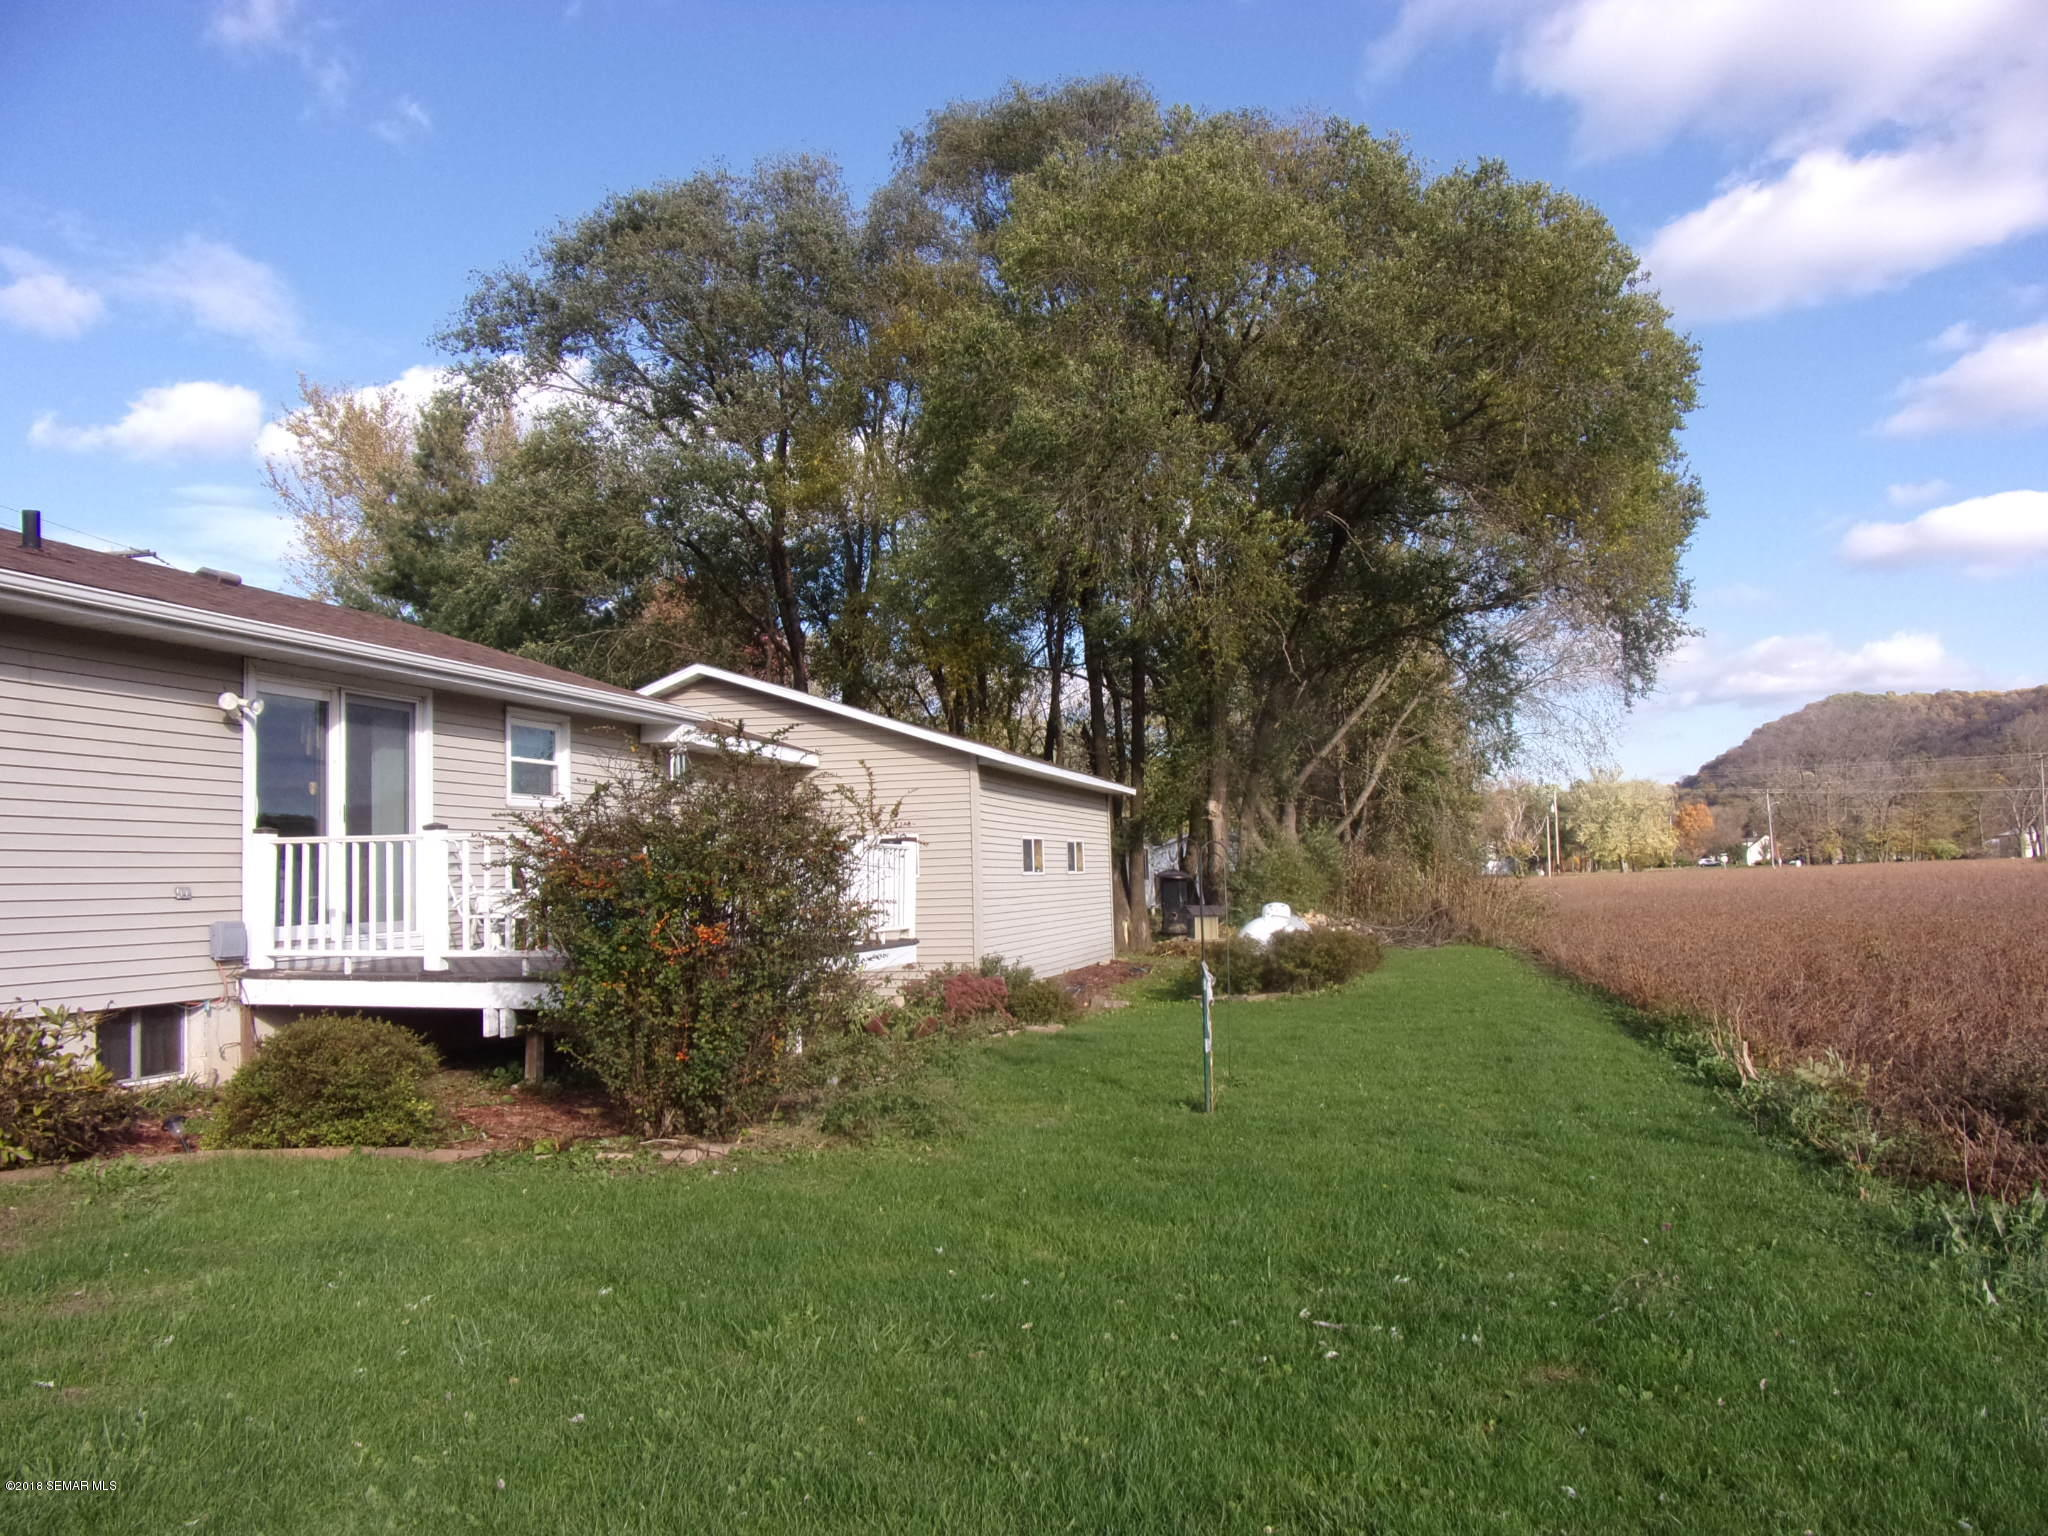 8580 Main,Winona,Minnesota 55987,3 Bedrooms Bedrooms,2 BathroomsBathrooms,Single family residence,Main,4091935